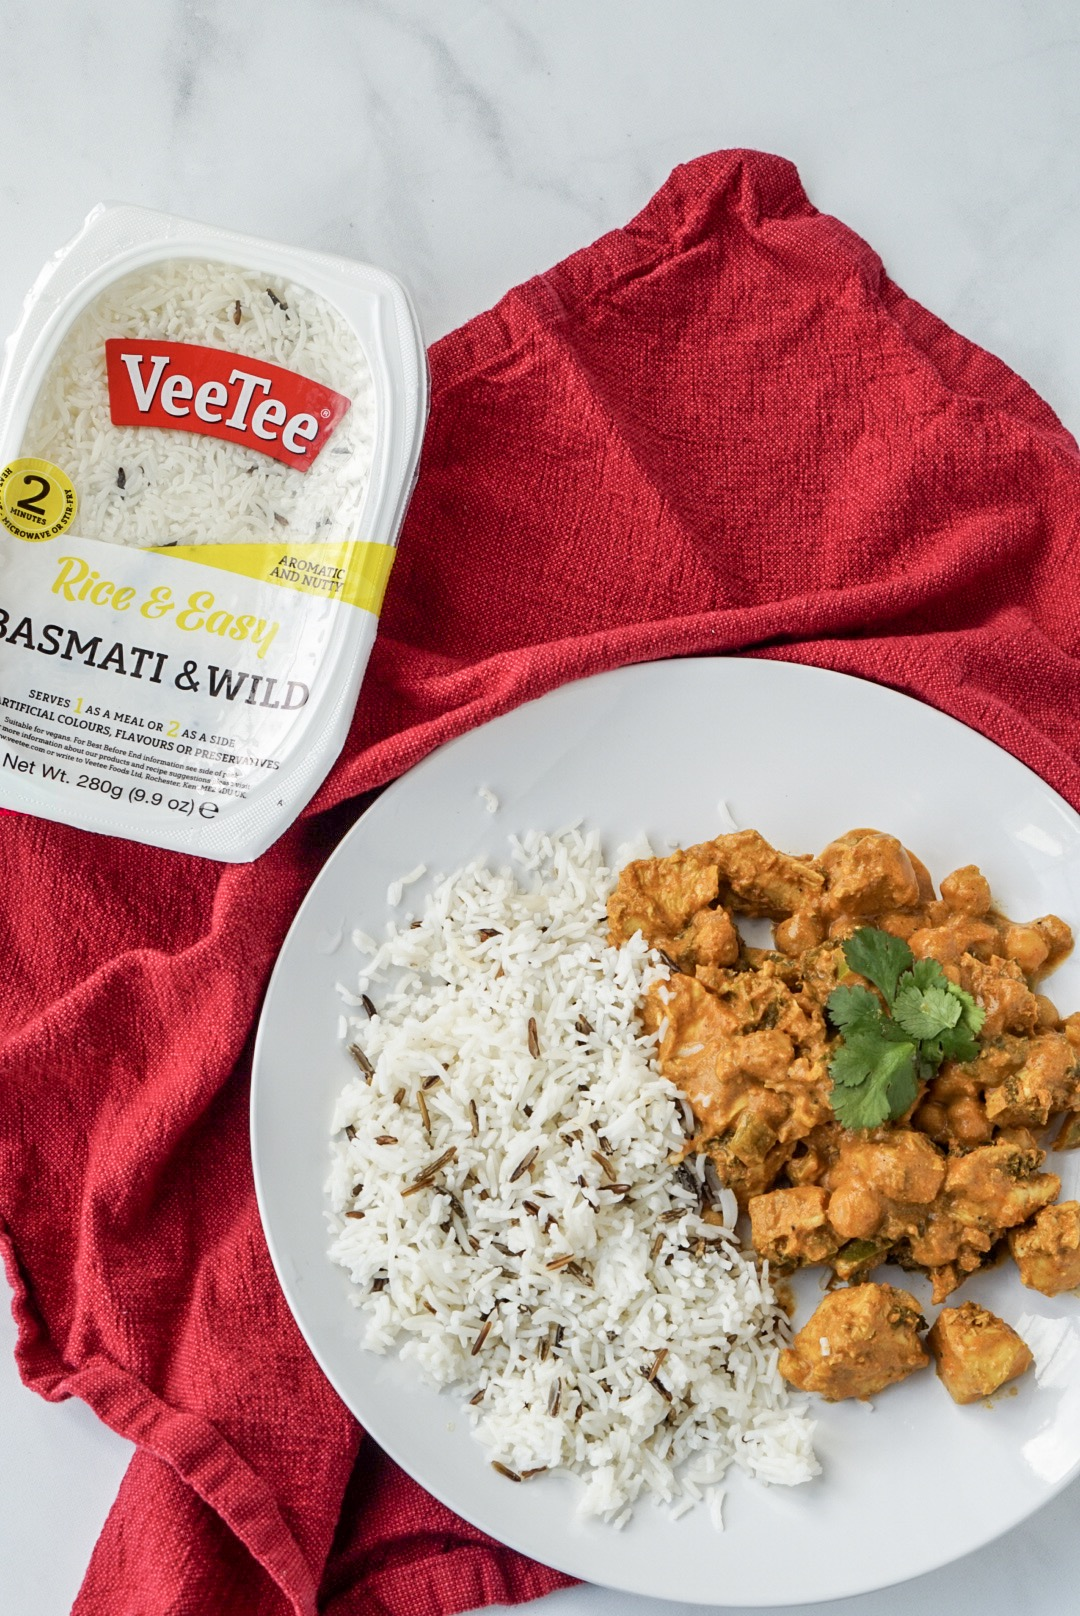 VeeTee Basmati and Wild Rice with Butter Chicken